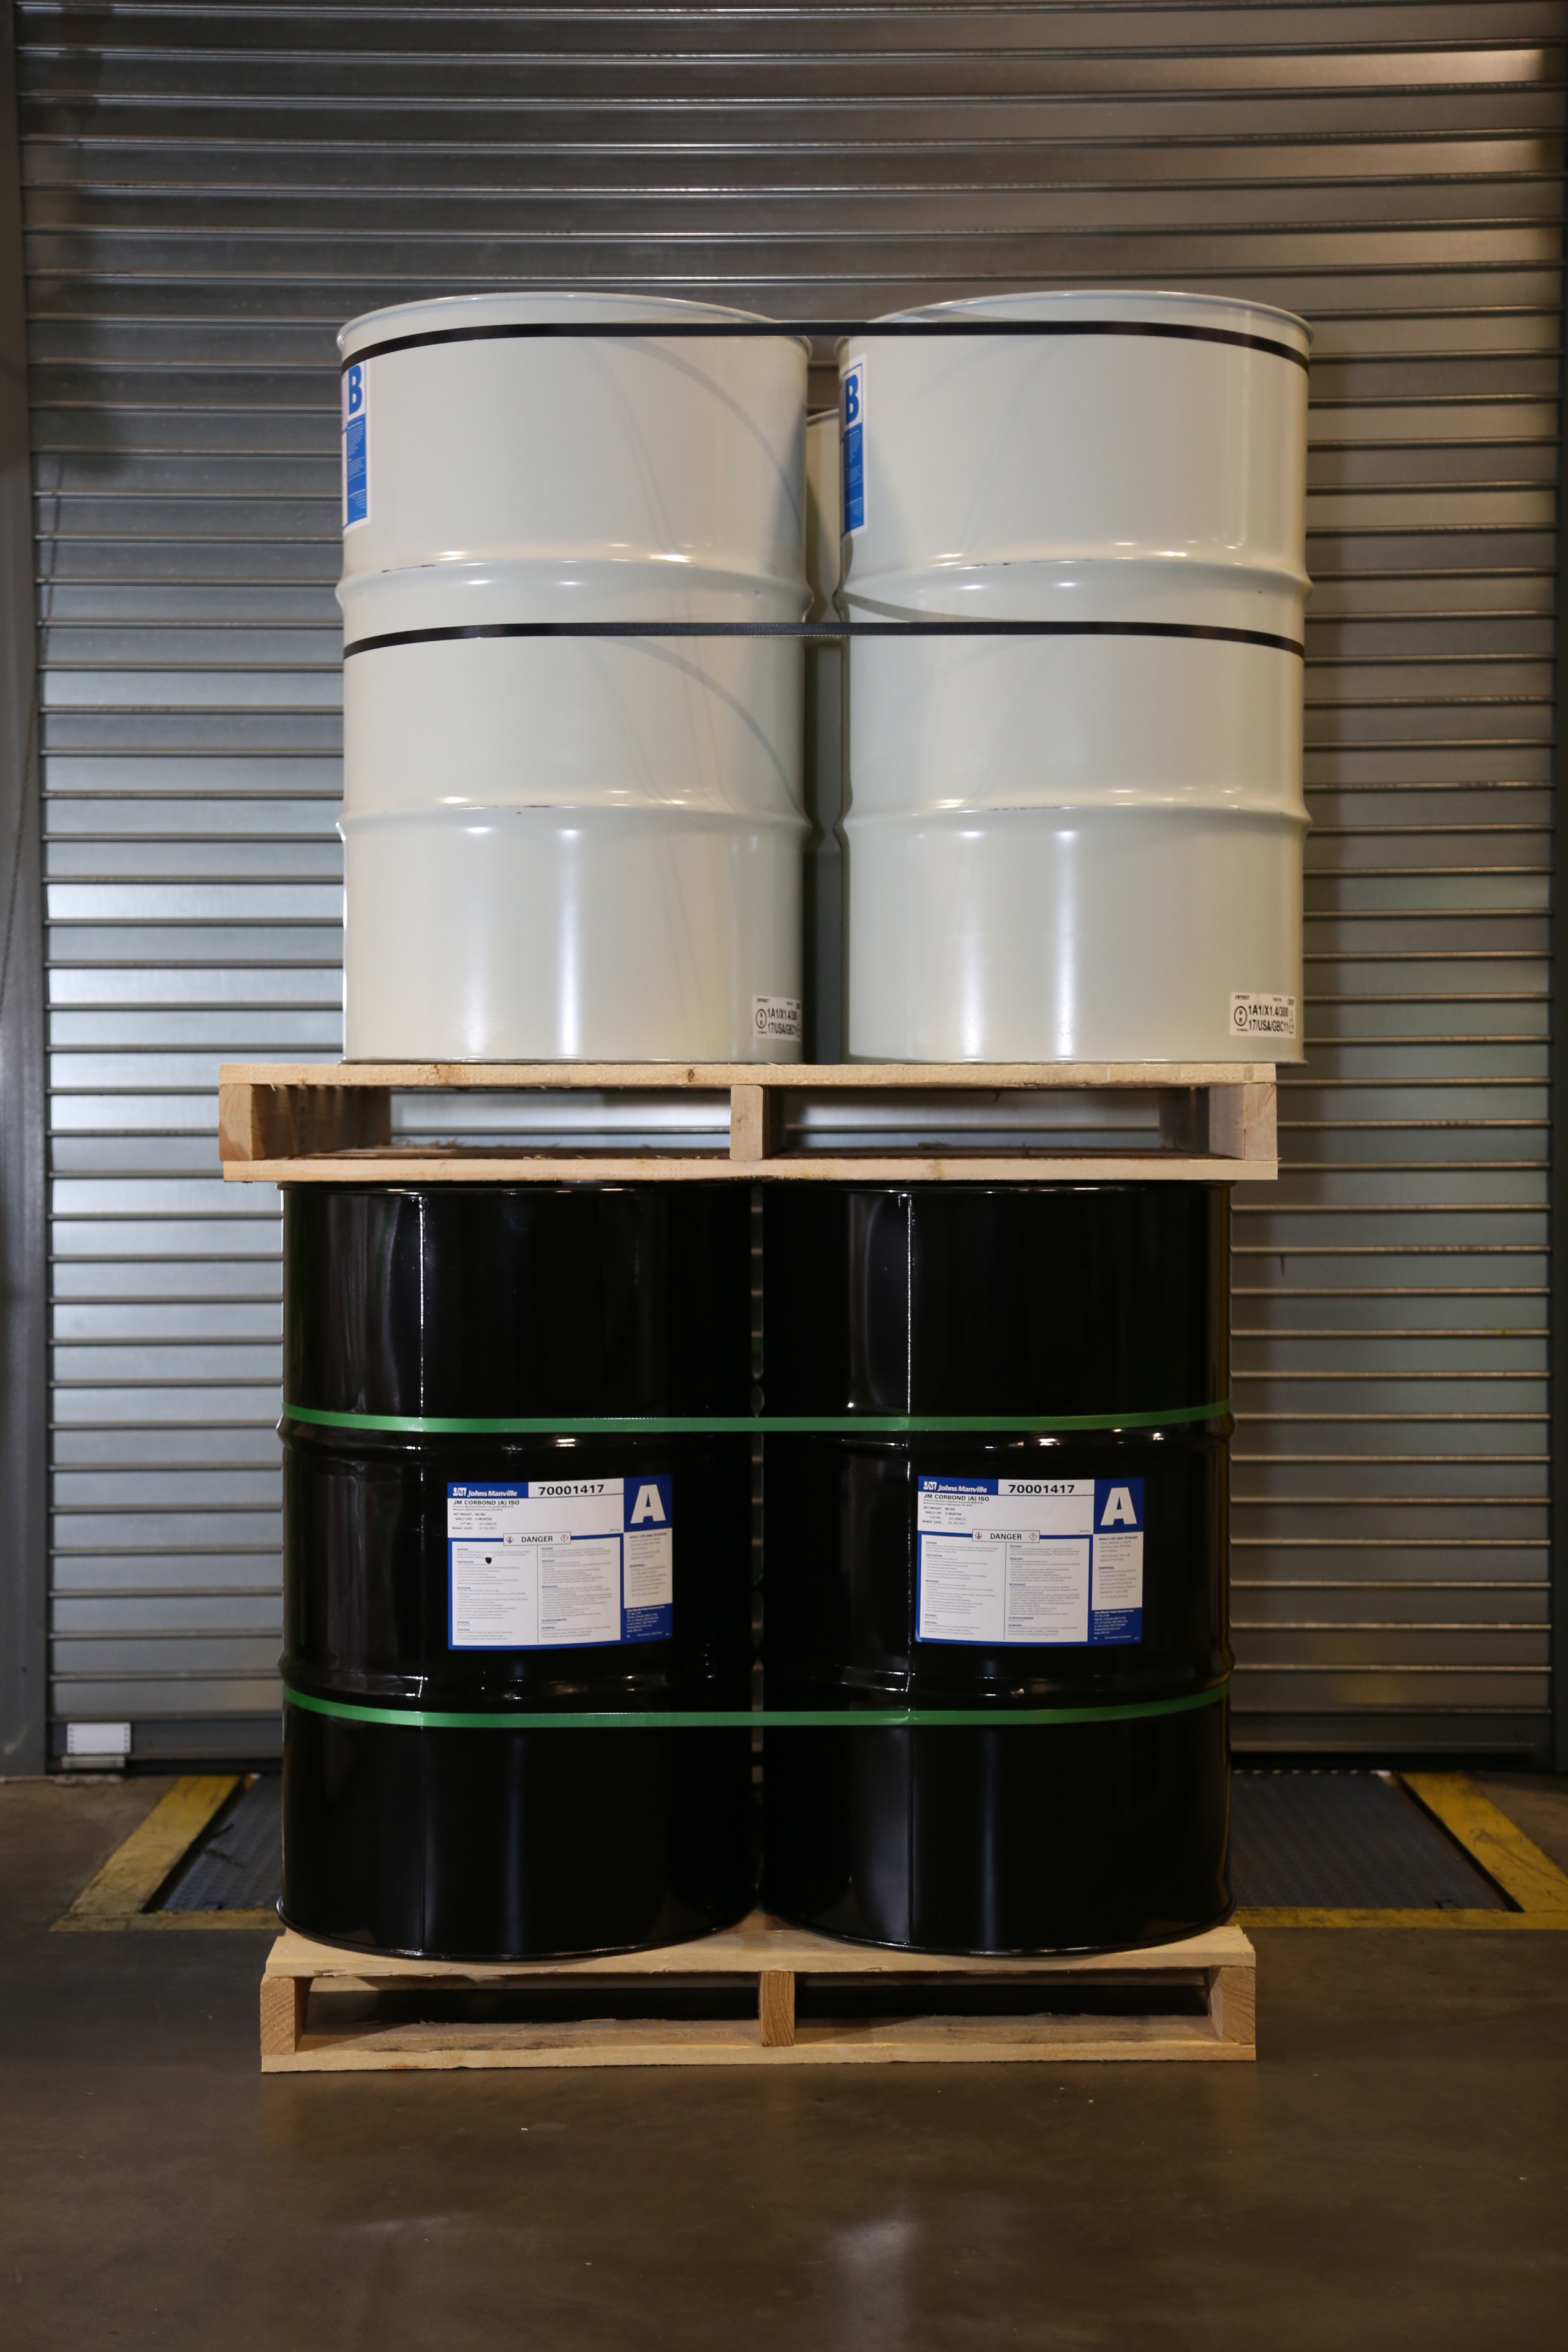 Johns Manville Corbond Spray Foam 55 Gallon Drums